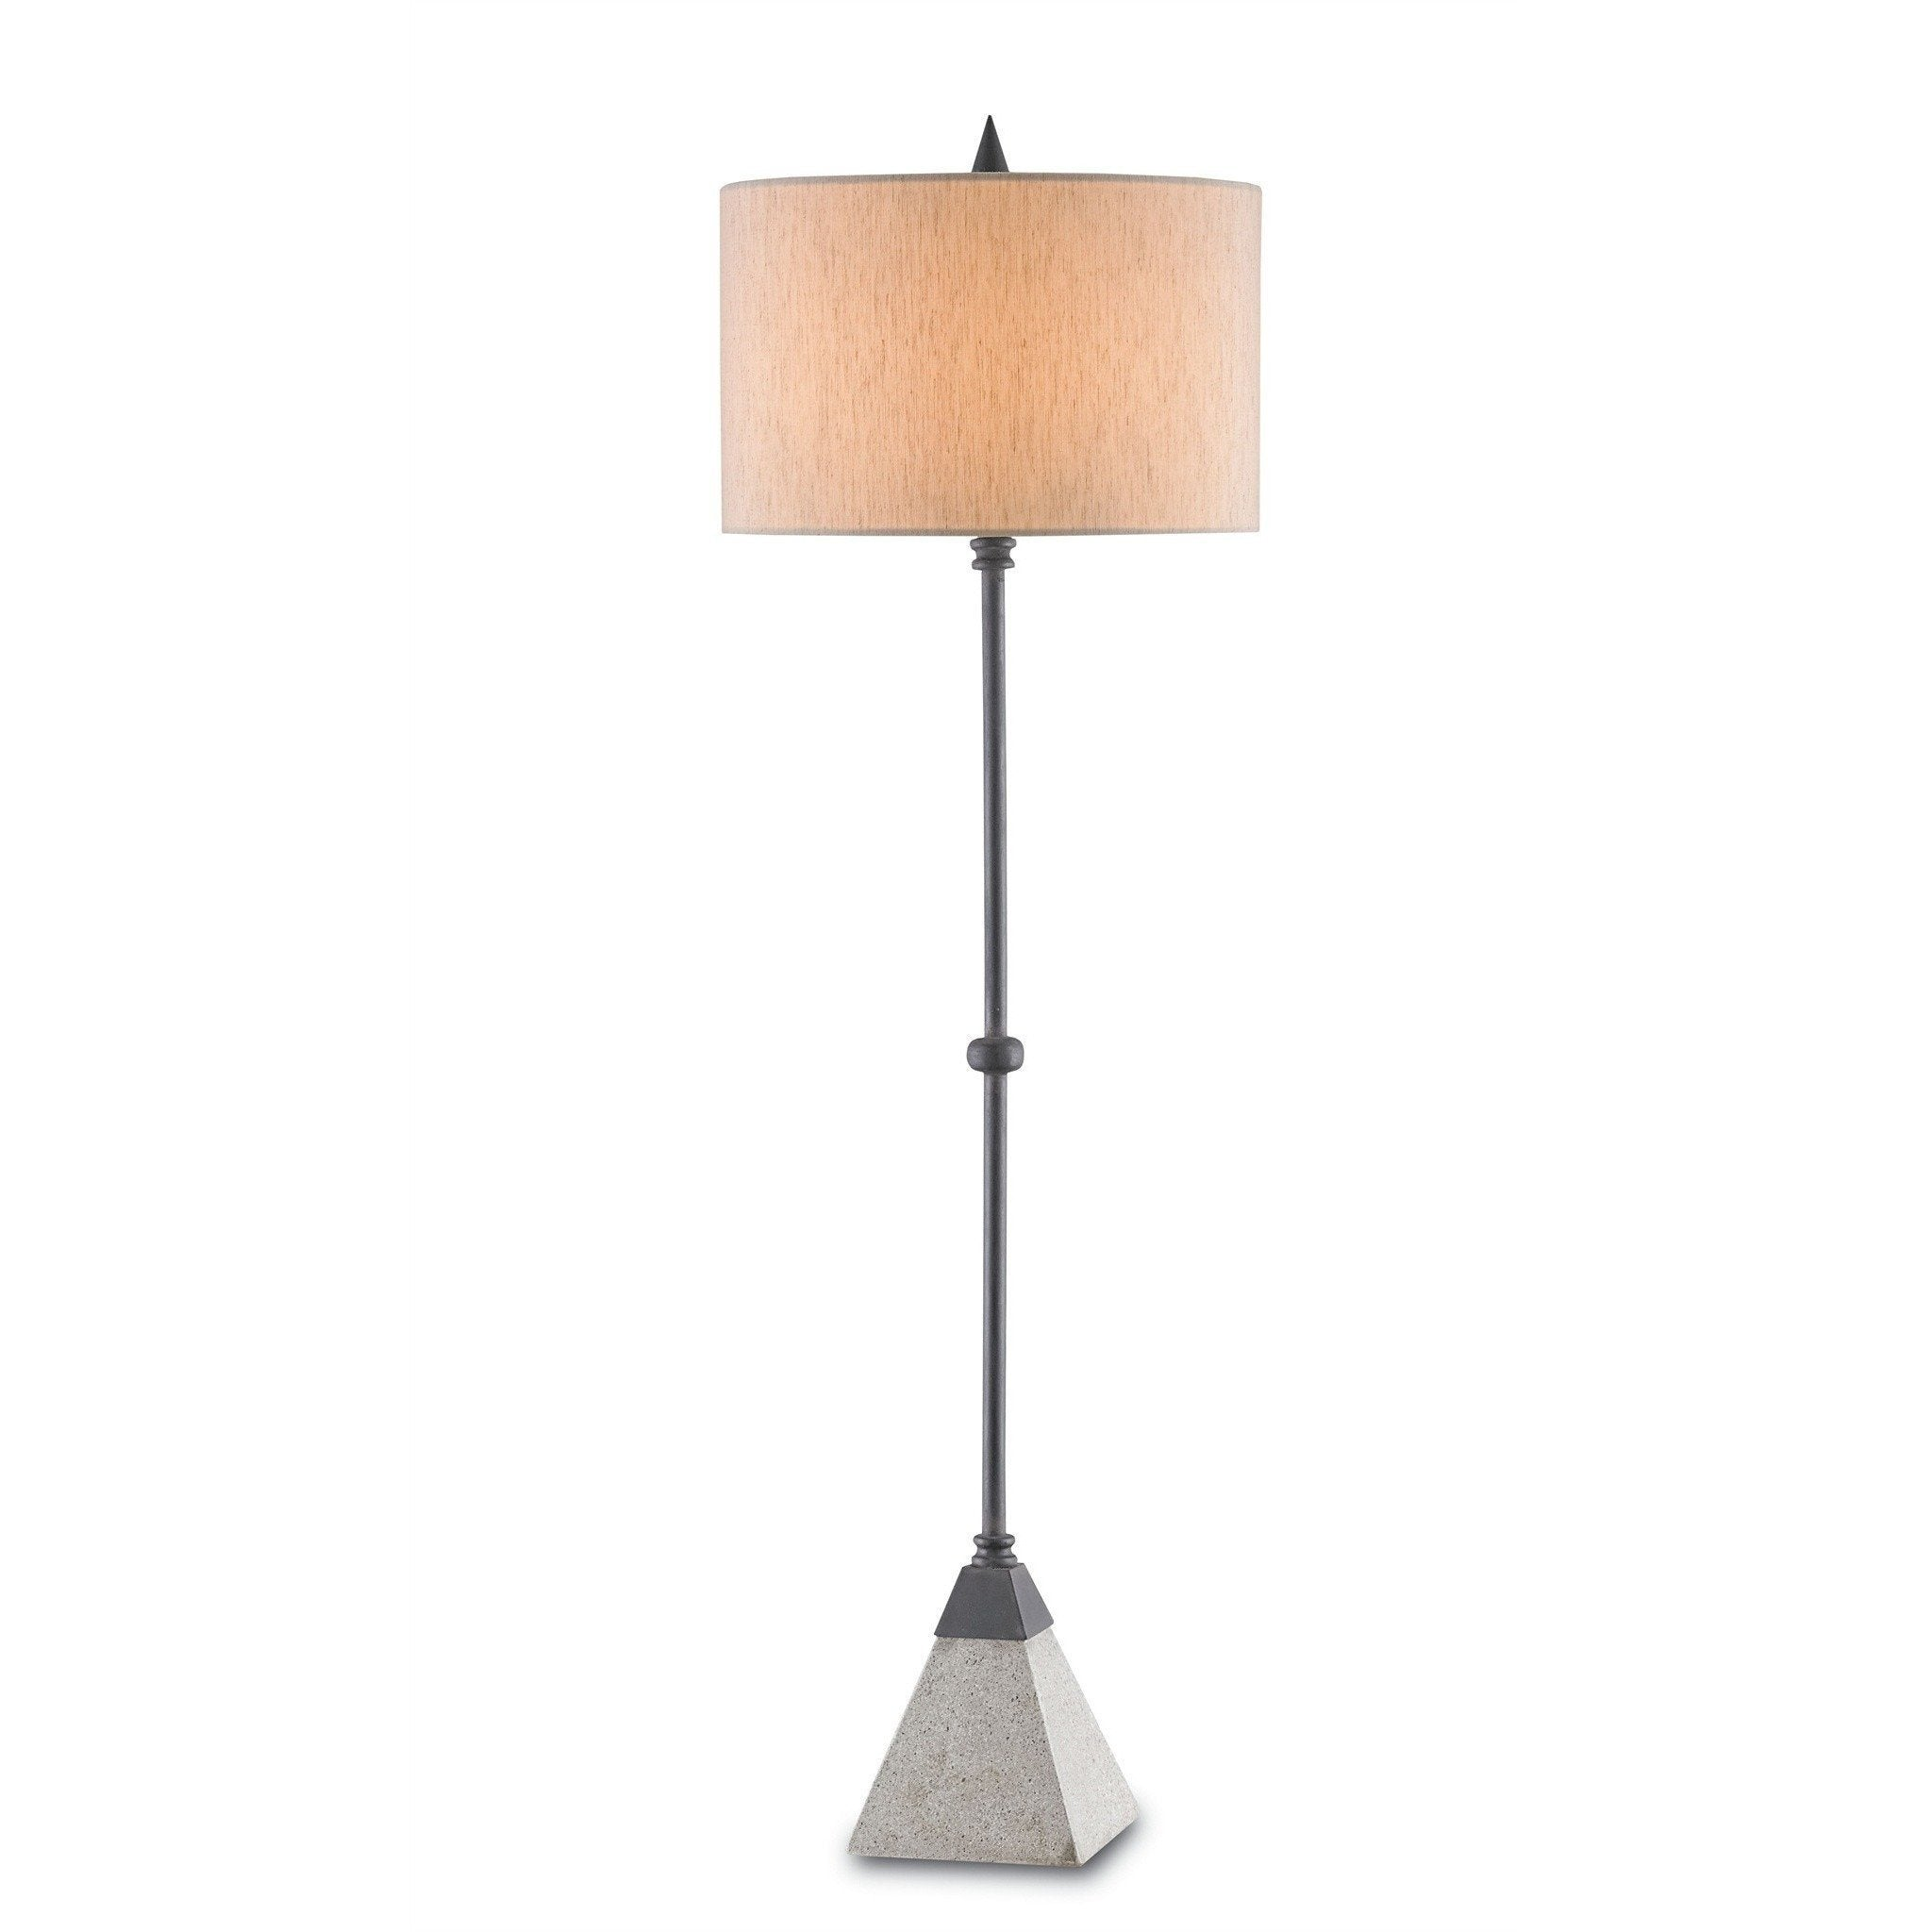 Currey and Company Irwin Table Lamp 6190 - LOVECUP